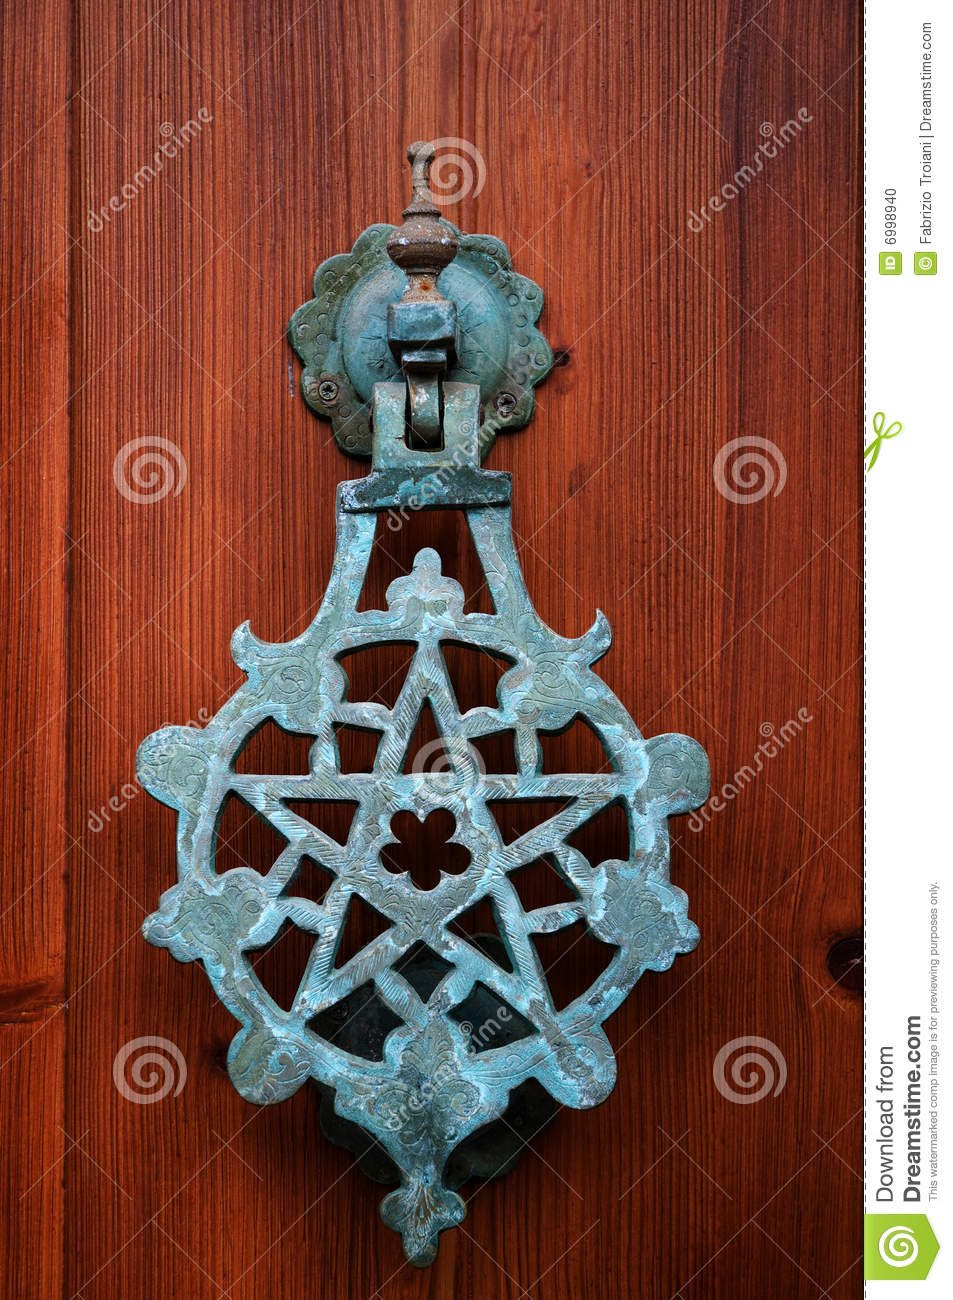 Pentacle kloppers